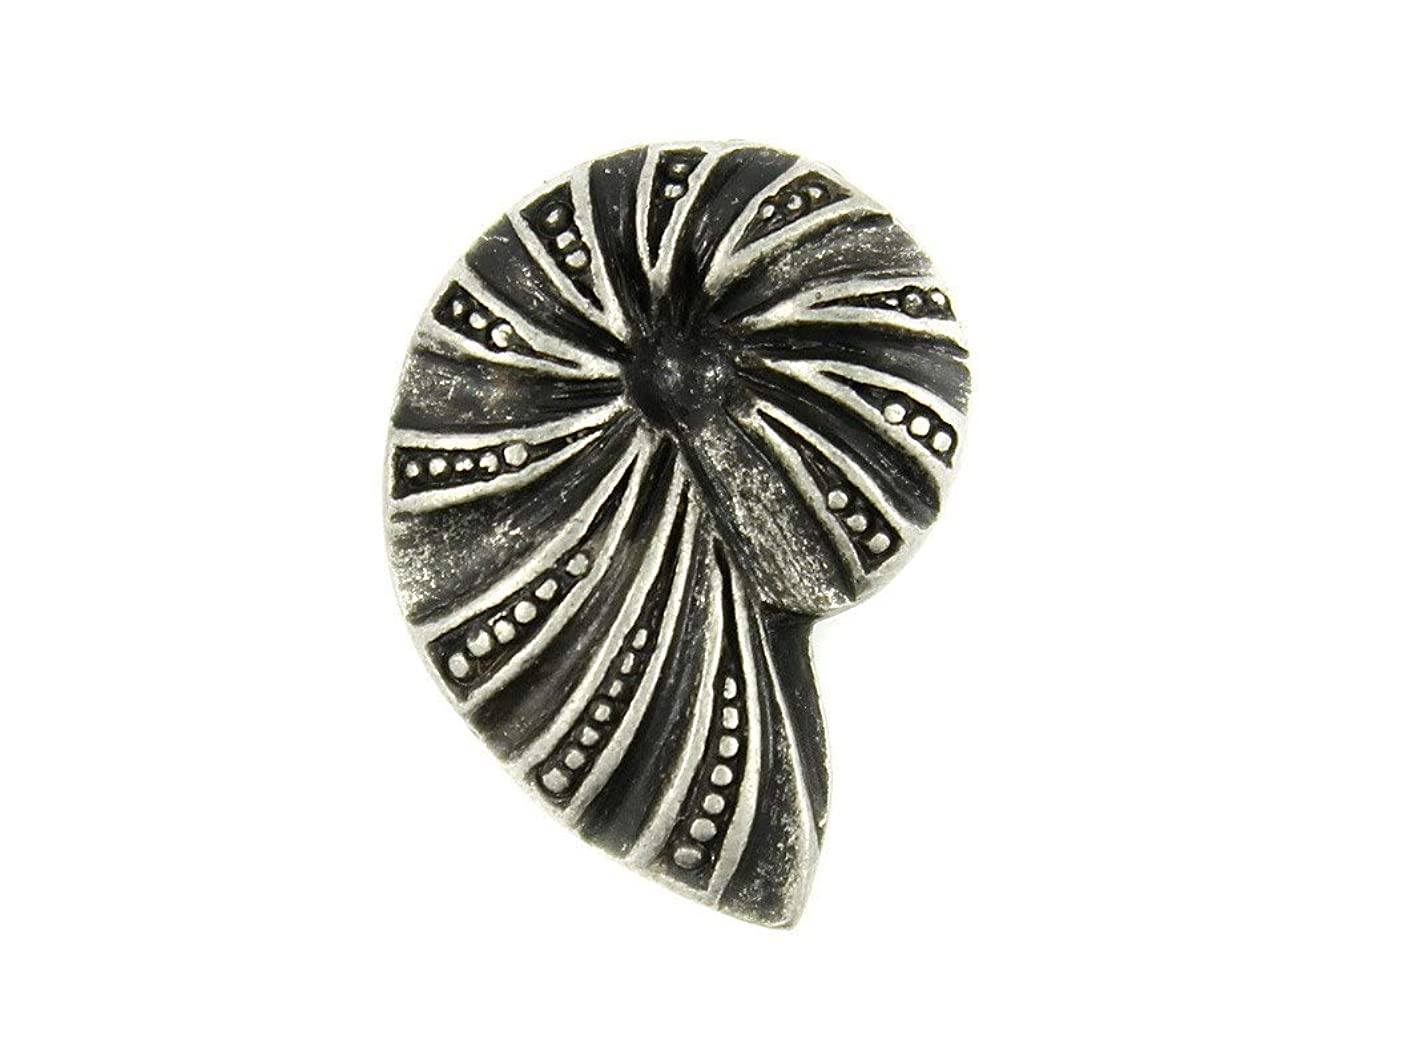 Bezelry 12 Pieces Ammonite Metal Shank Buttons 20mm X 14mm (Antique Silver)